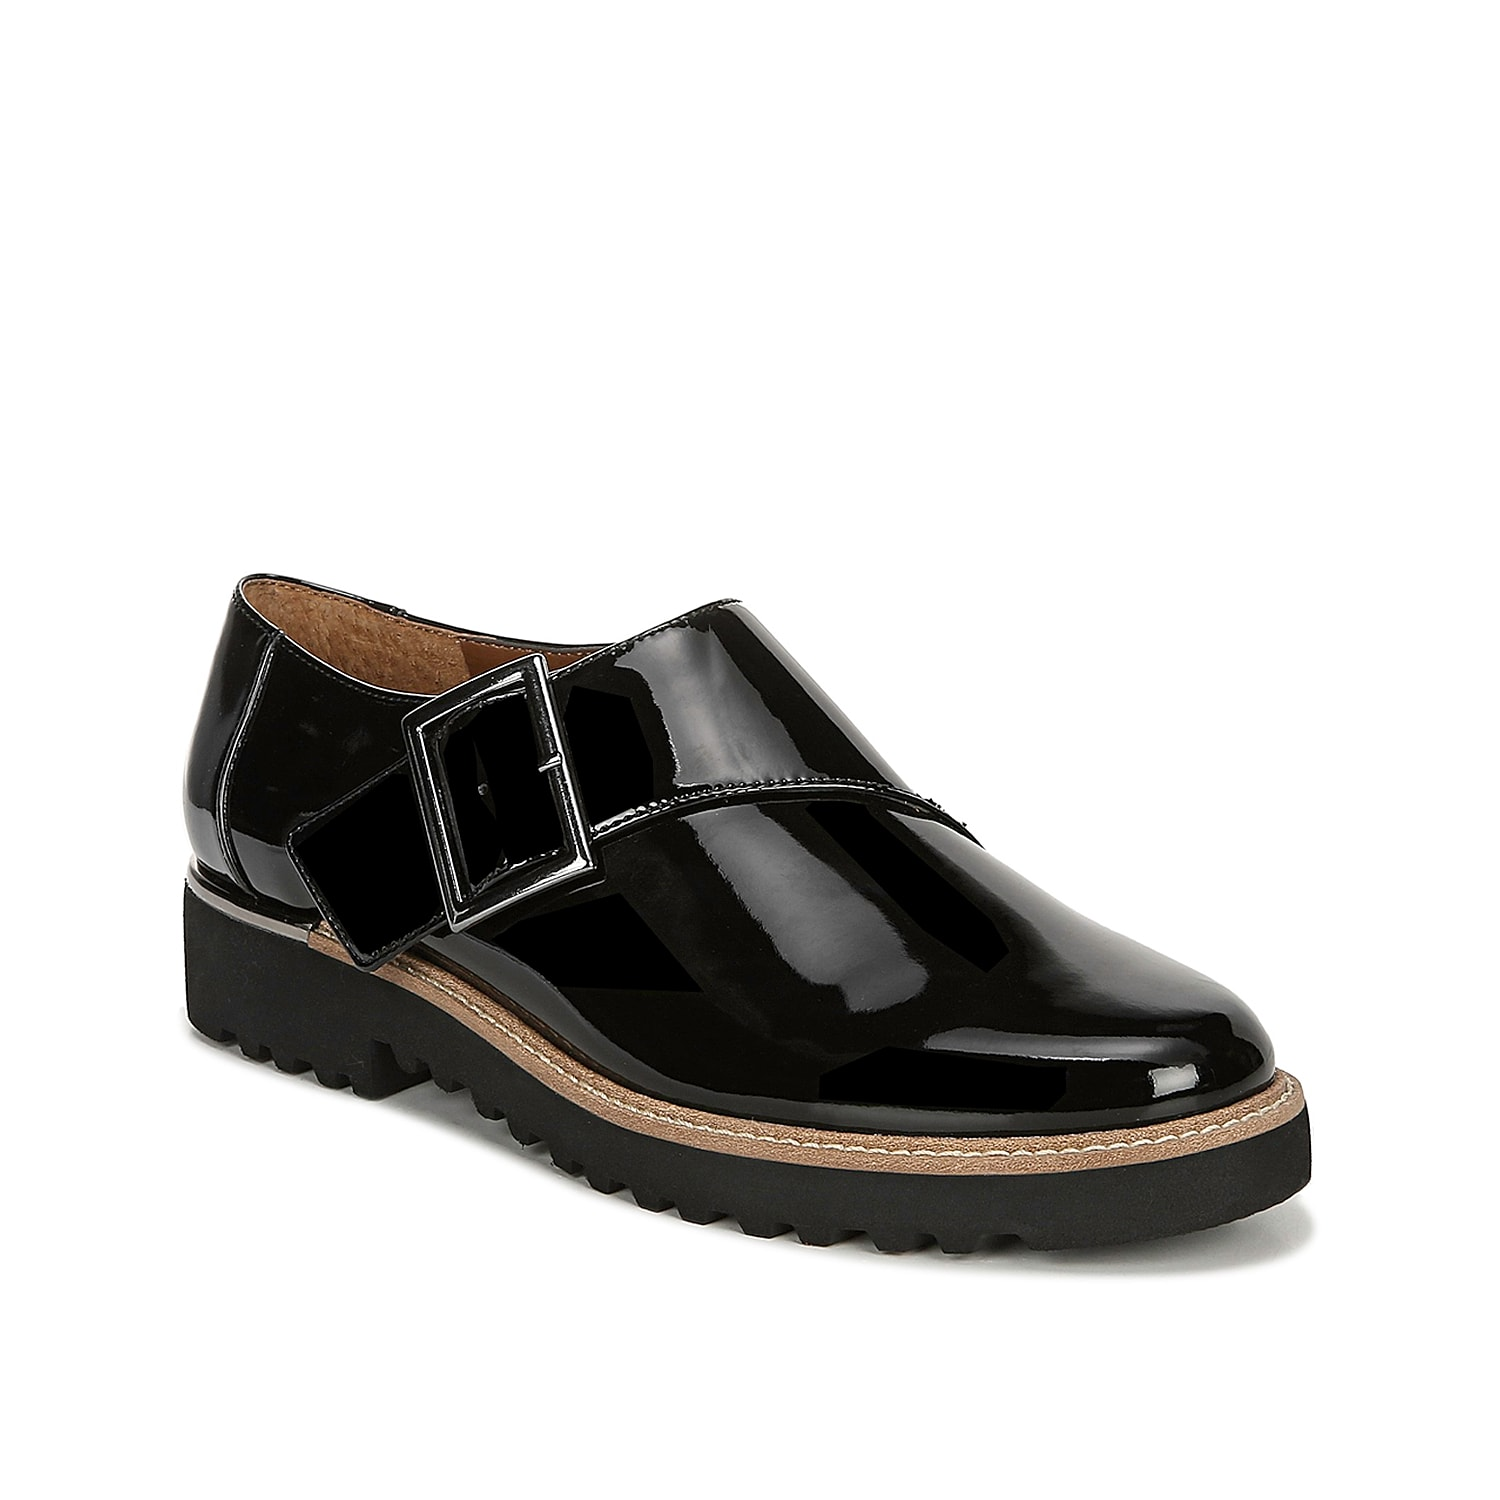 Bring menswear-inspired intrigue to your look with the Cade slip-ons from Franco Sarto. This glossy pair features a bold monk strap closure and lug sole to add edge to cropped slacks or distressed jeans.